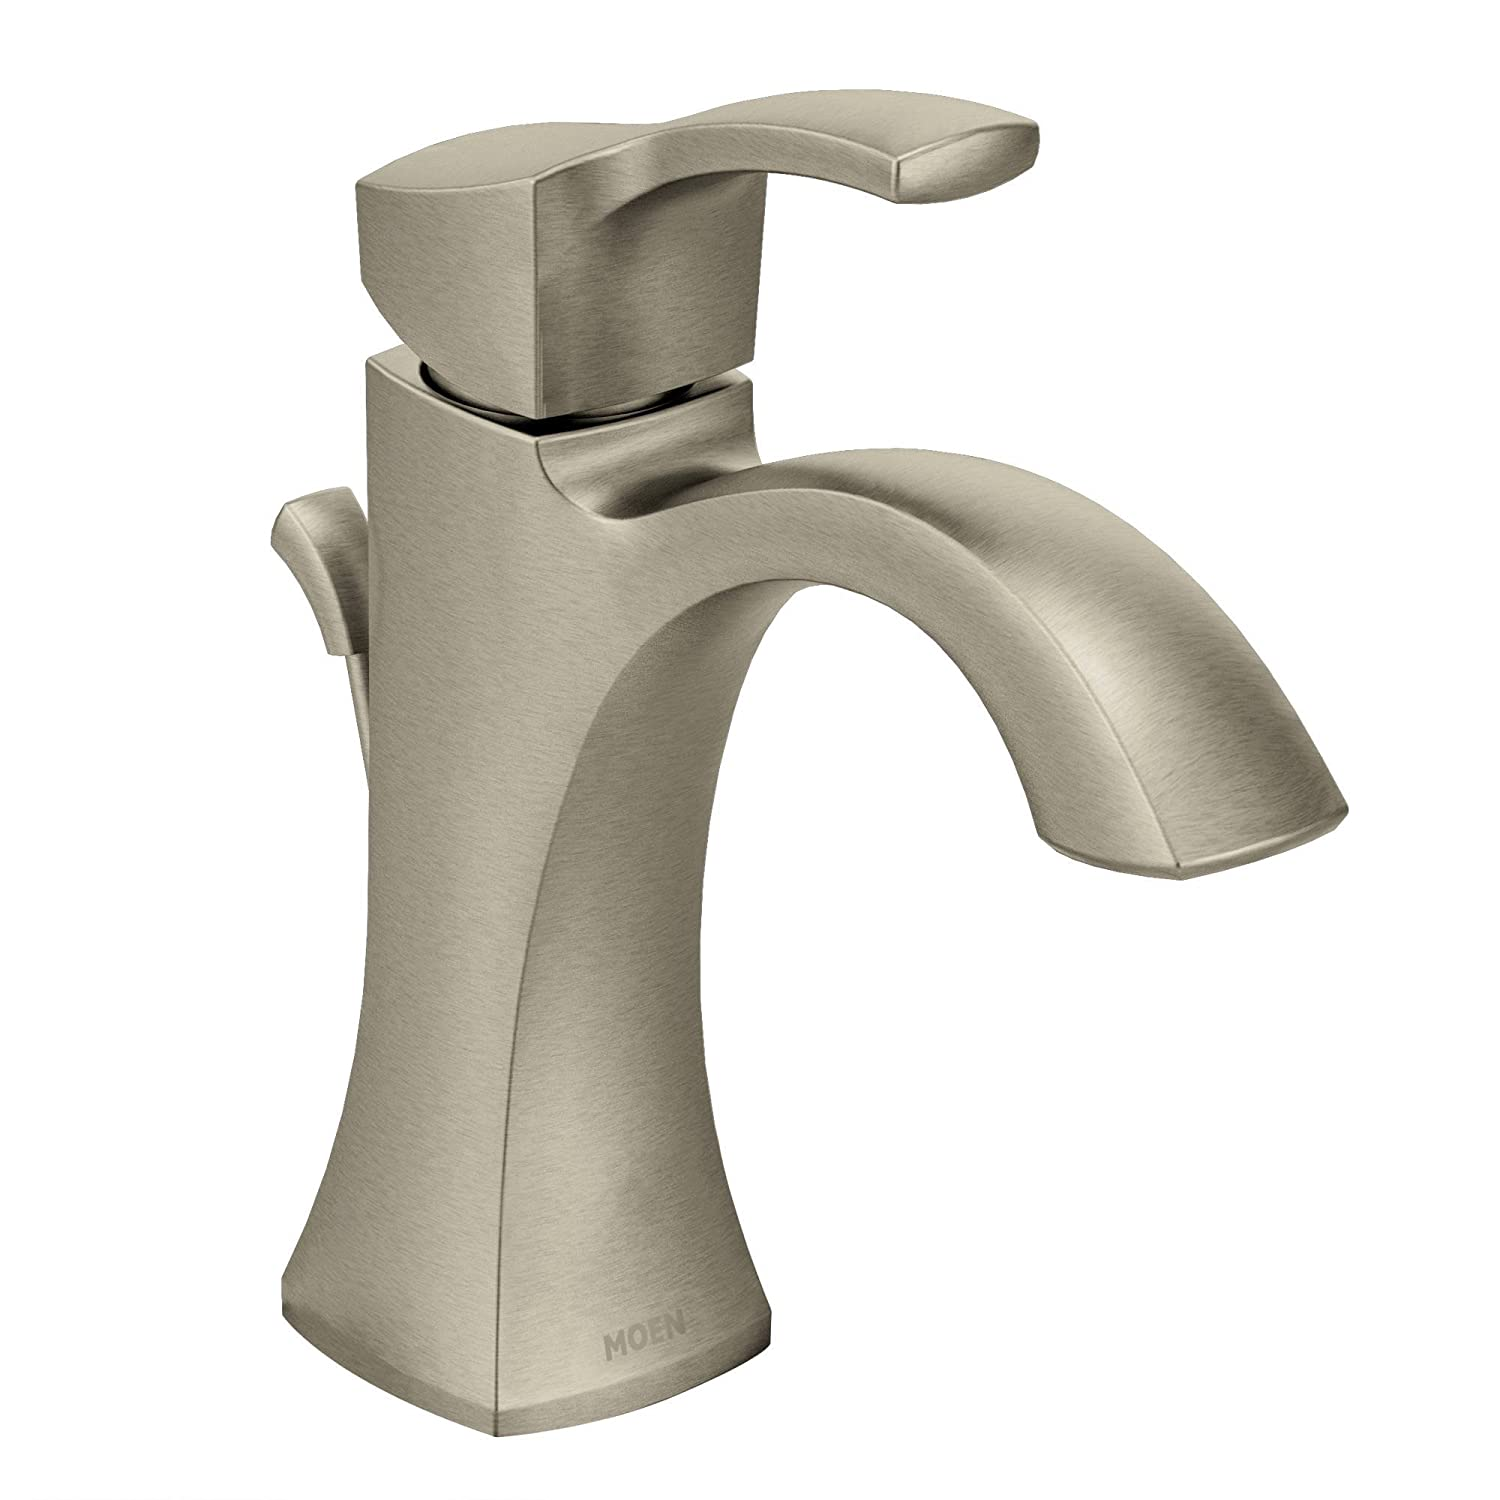 Merveilleux Moen 6903BN Voss One Handle High Arc Bathroom Faucet With Drain Assembly,  Brushed Nickel   Bathroom Sink Faucets   Amazon.com